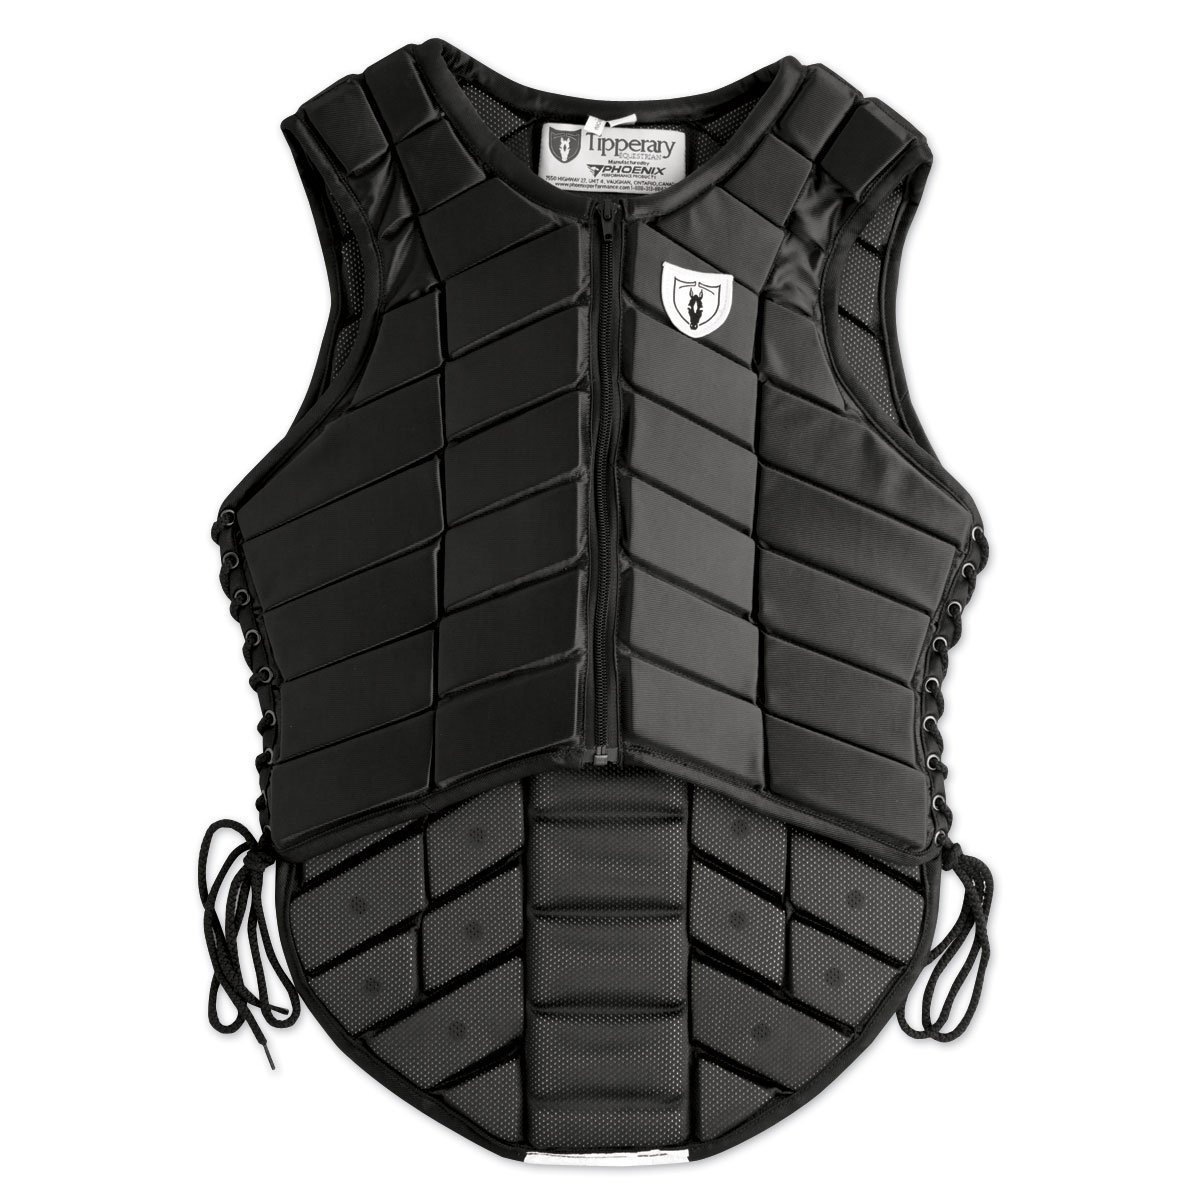 Tipperary Eventer Vest - Black (XS)